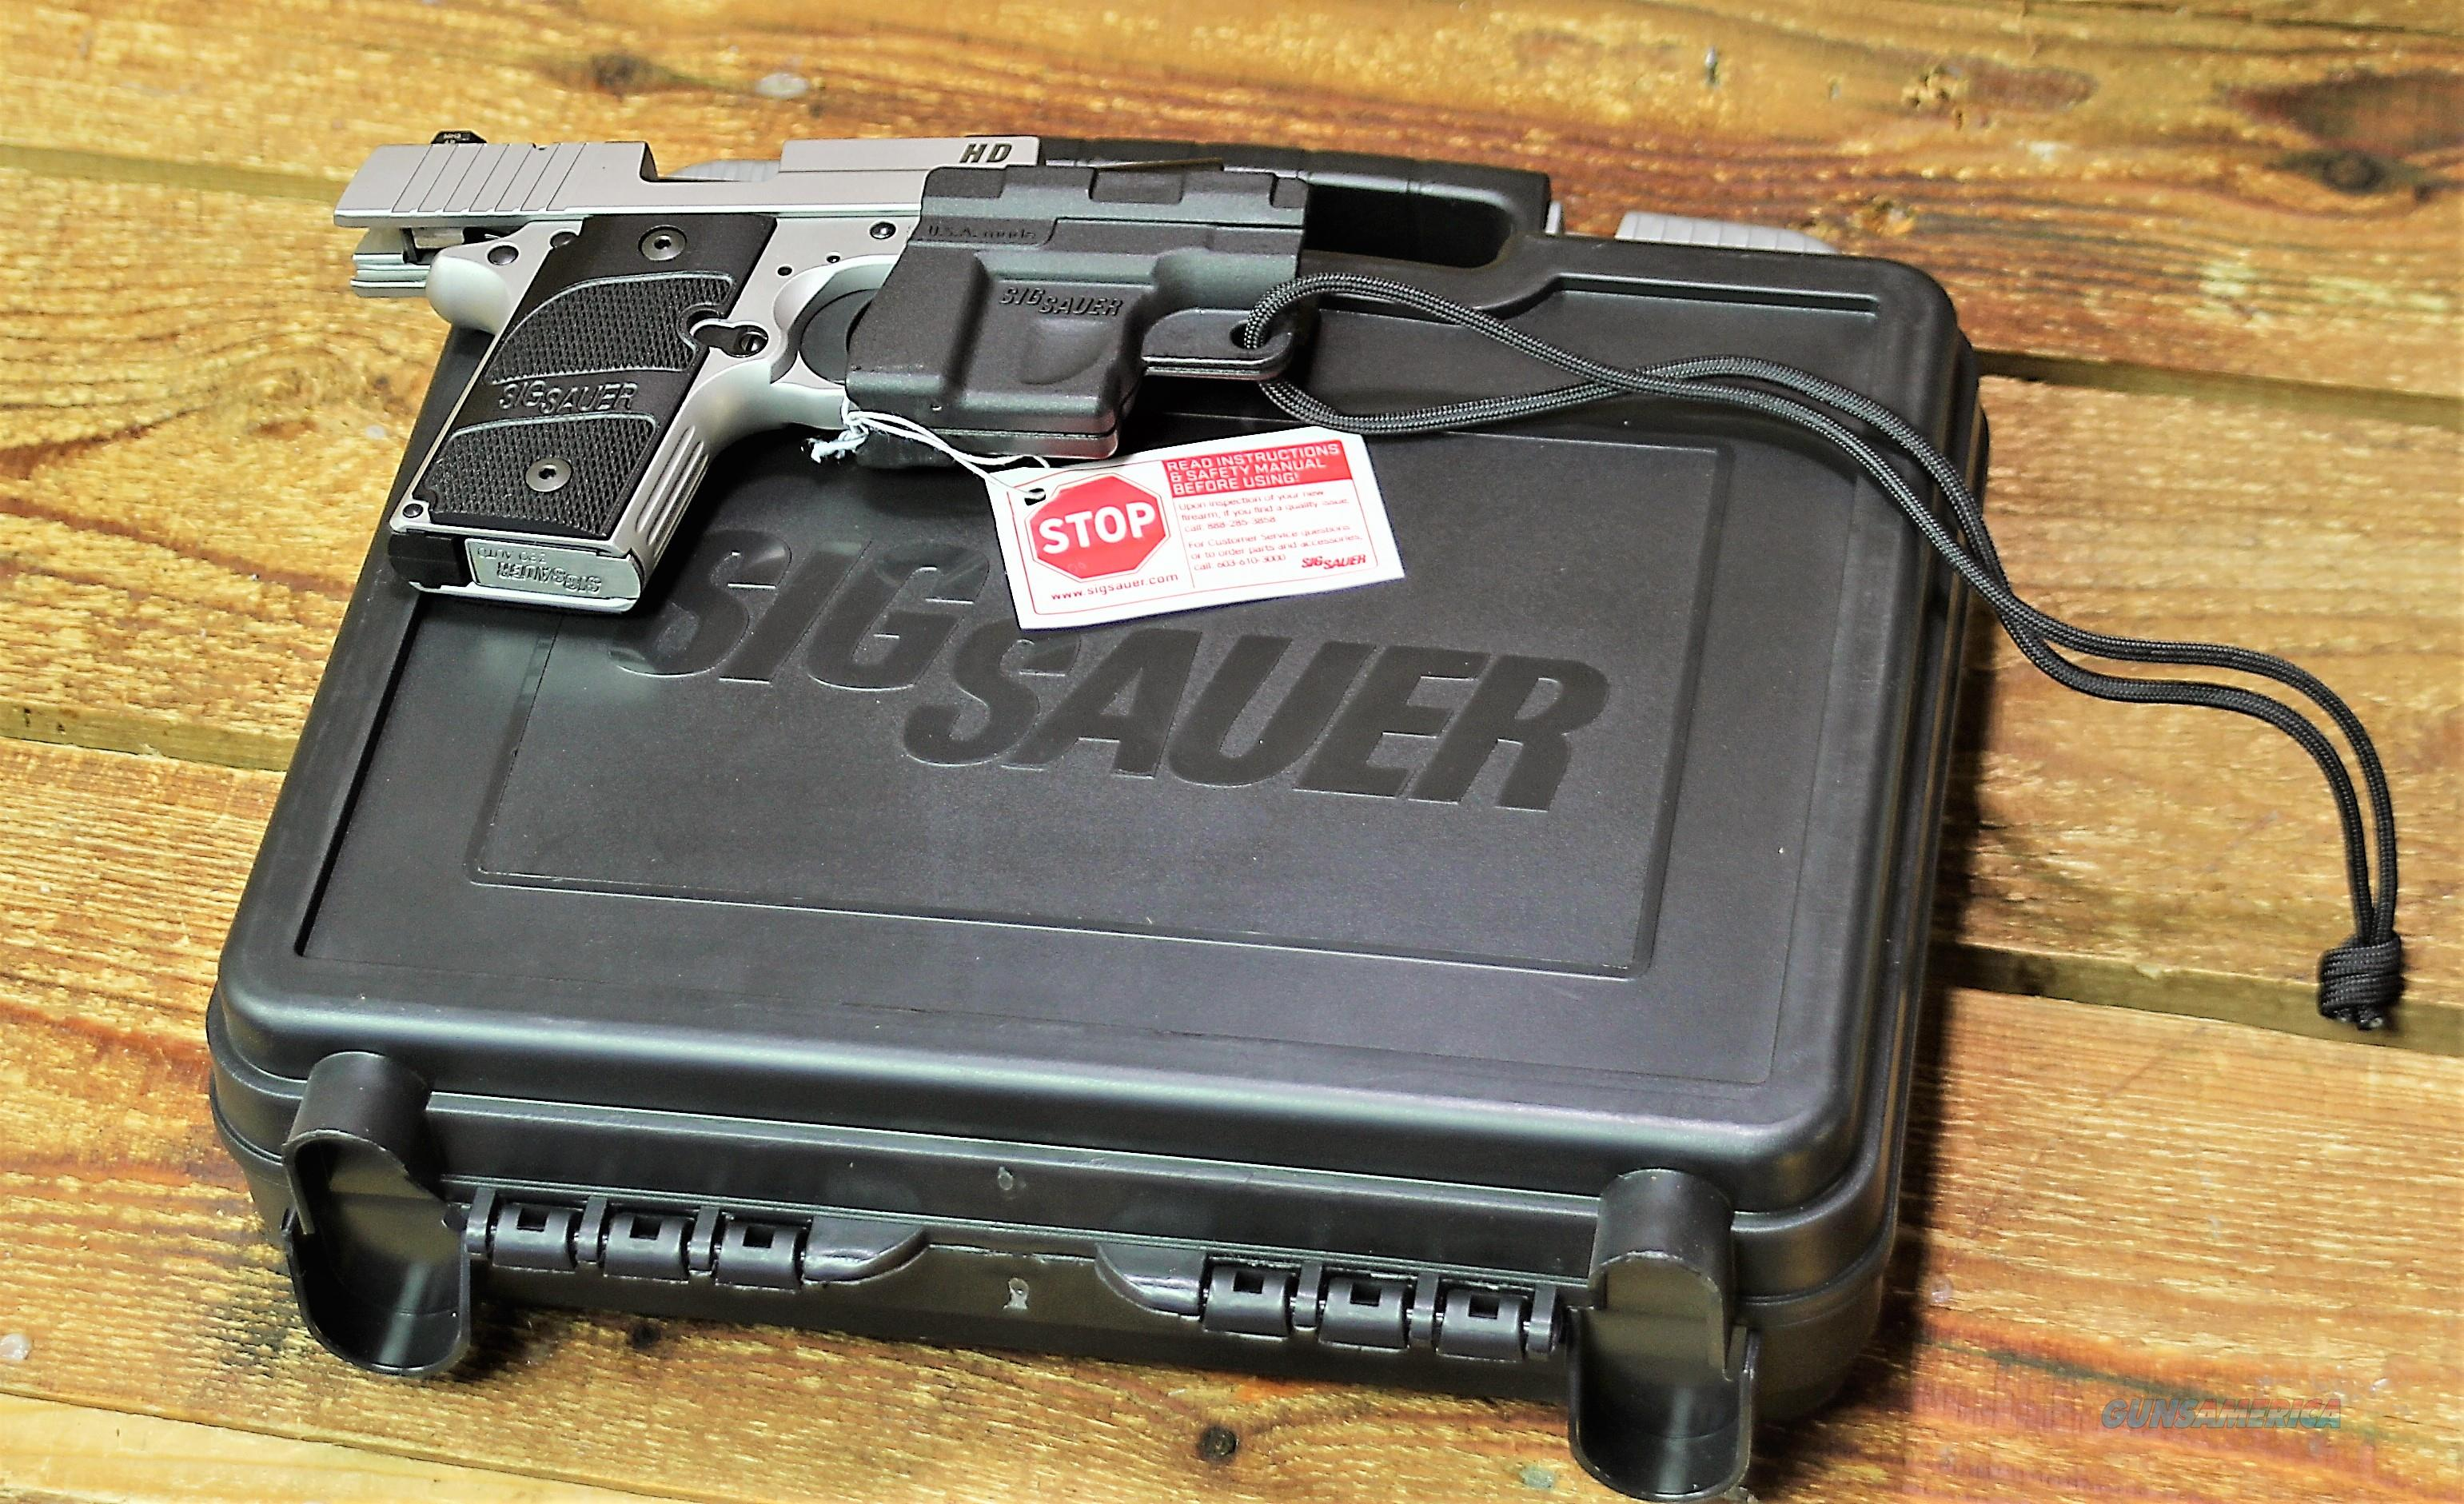 1.  $72 Sig sauer P238 California Compliant (CA Approved) for most Ban state Conceal & Carry HD   238380HDCA 380 ACP Automatic Colt Pistol pocket pistol  2.7 in G10 Composite Grip Stainless steel SS Night Sights 6 Rd Siglite Night    Guns > Pistols > Sig - Sauer/Sigarms Pistols > P238